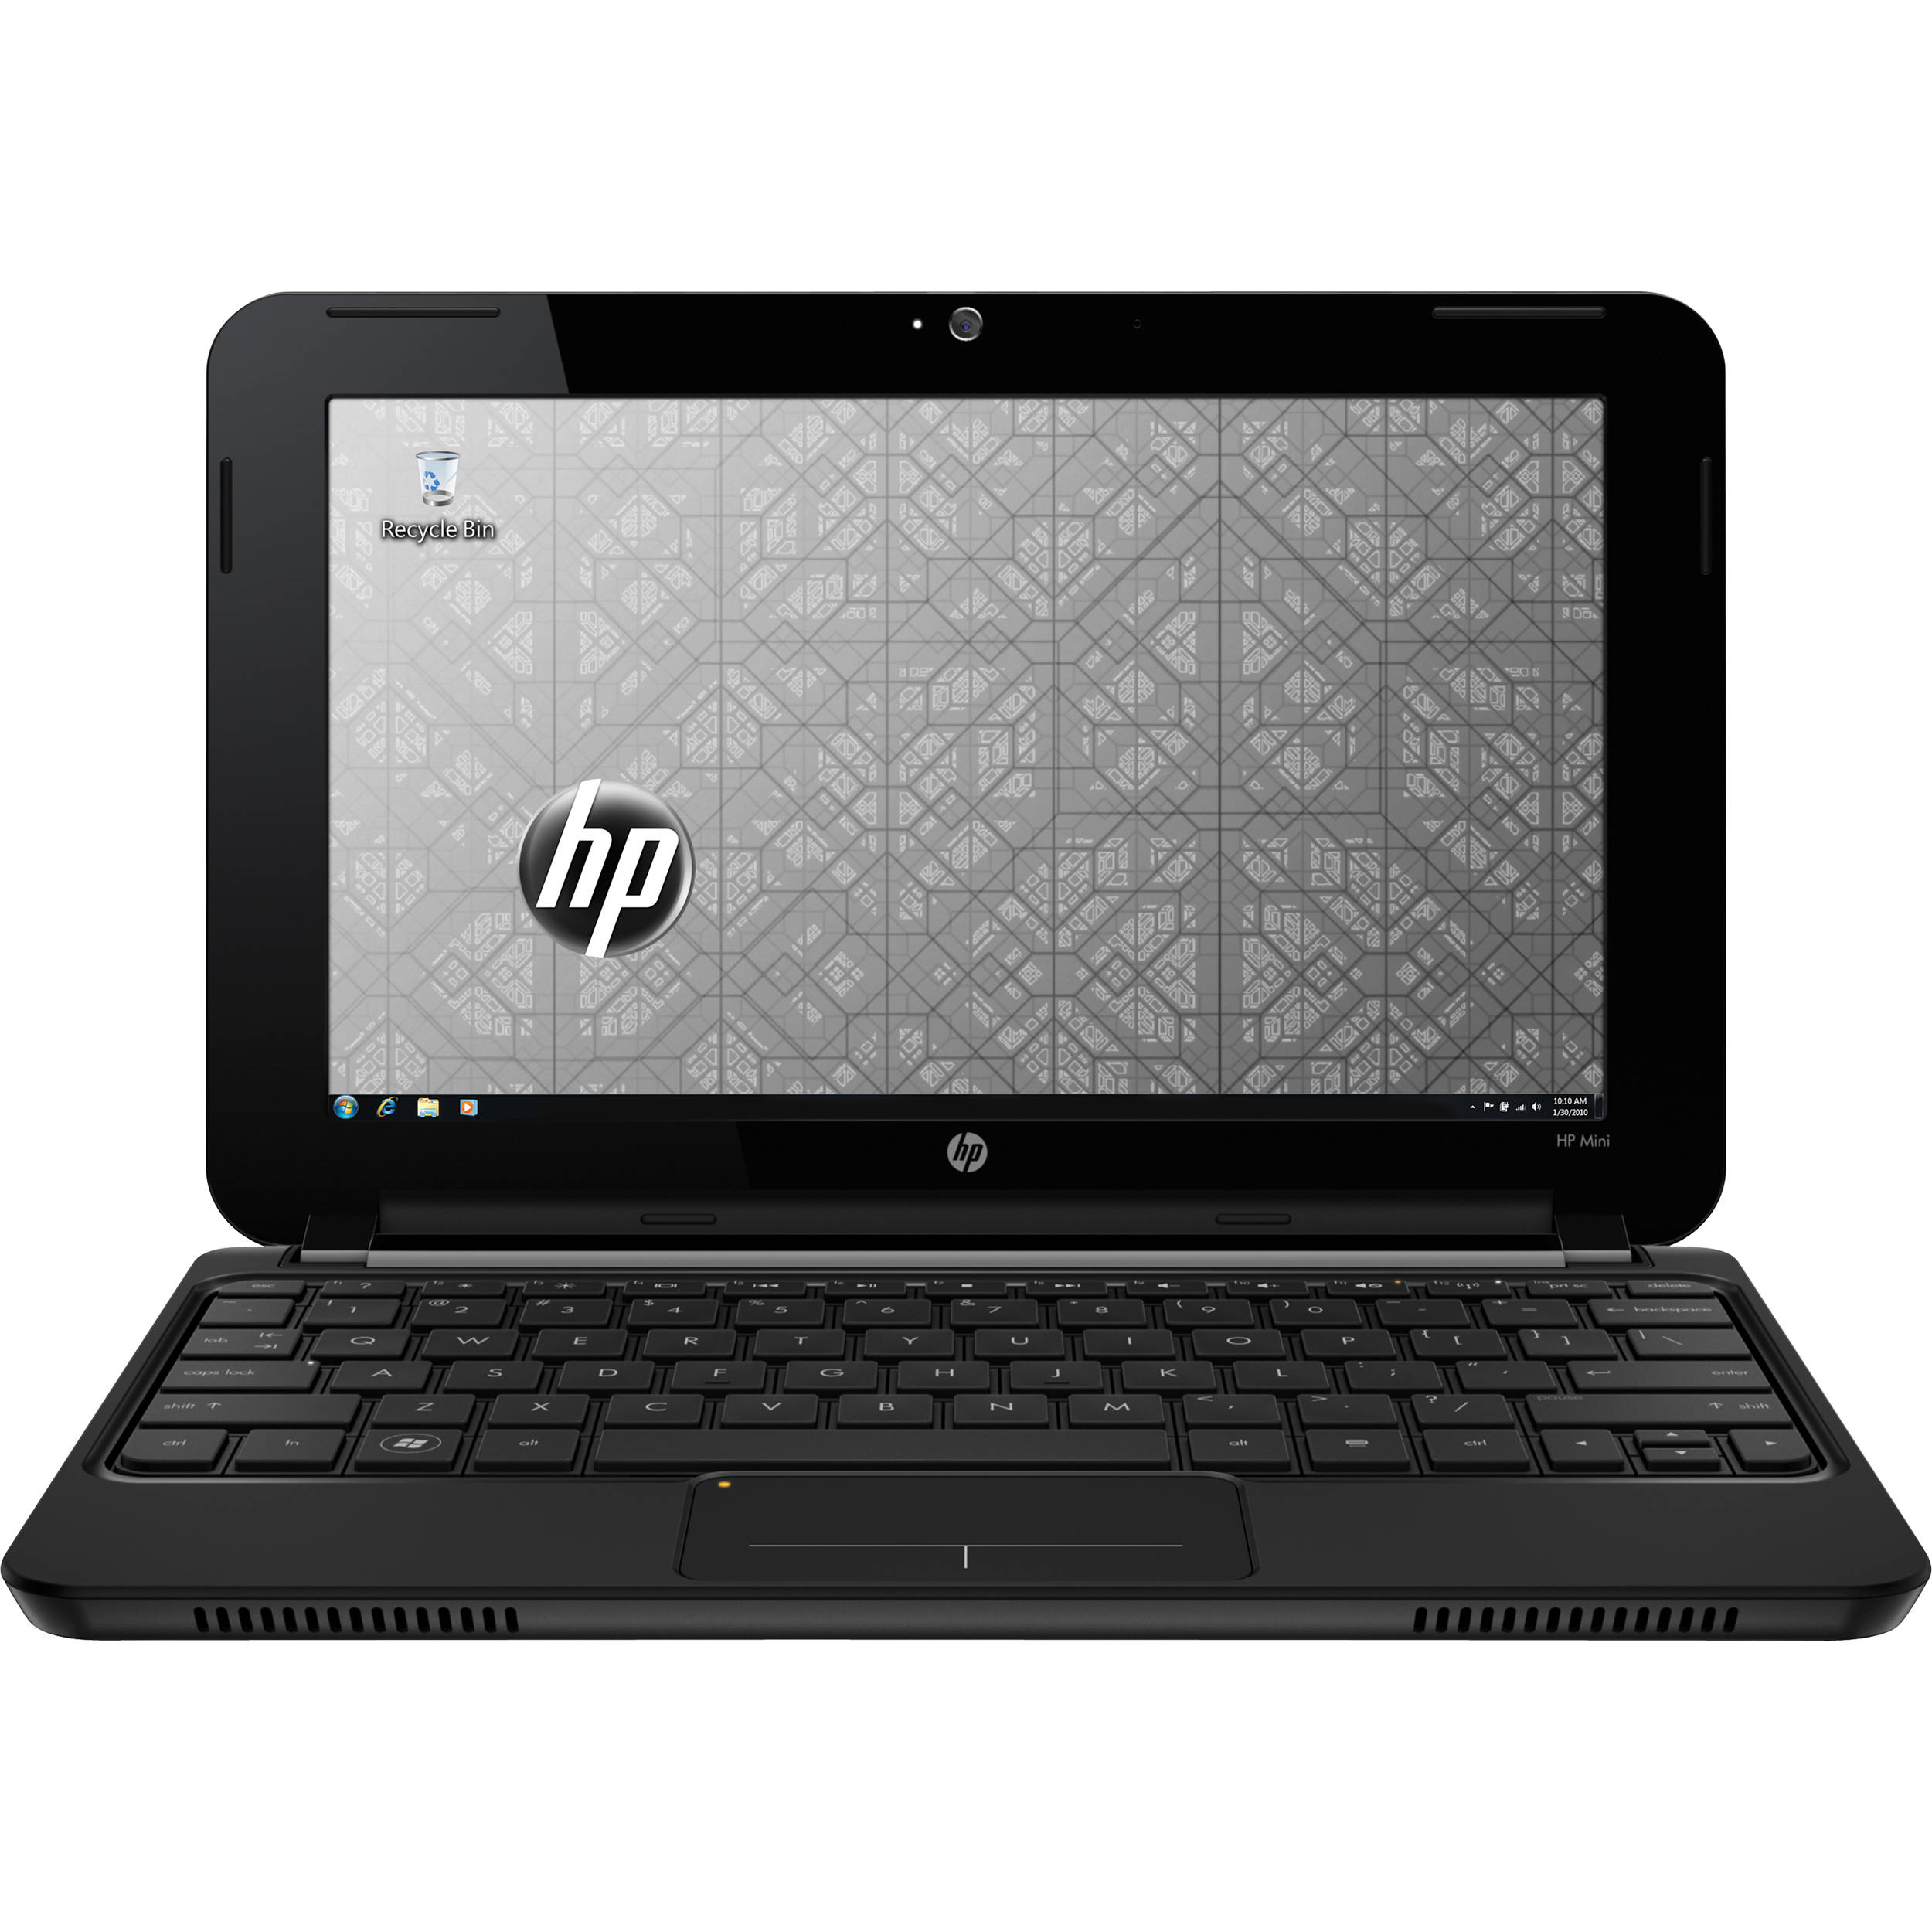 HP Mini 1030NR SMSC LAN Drivers for PC